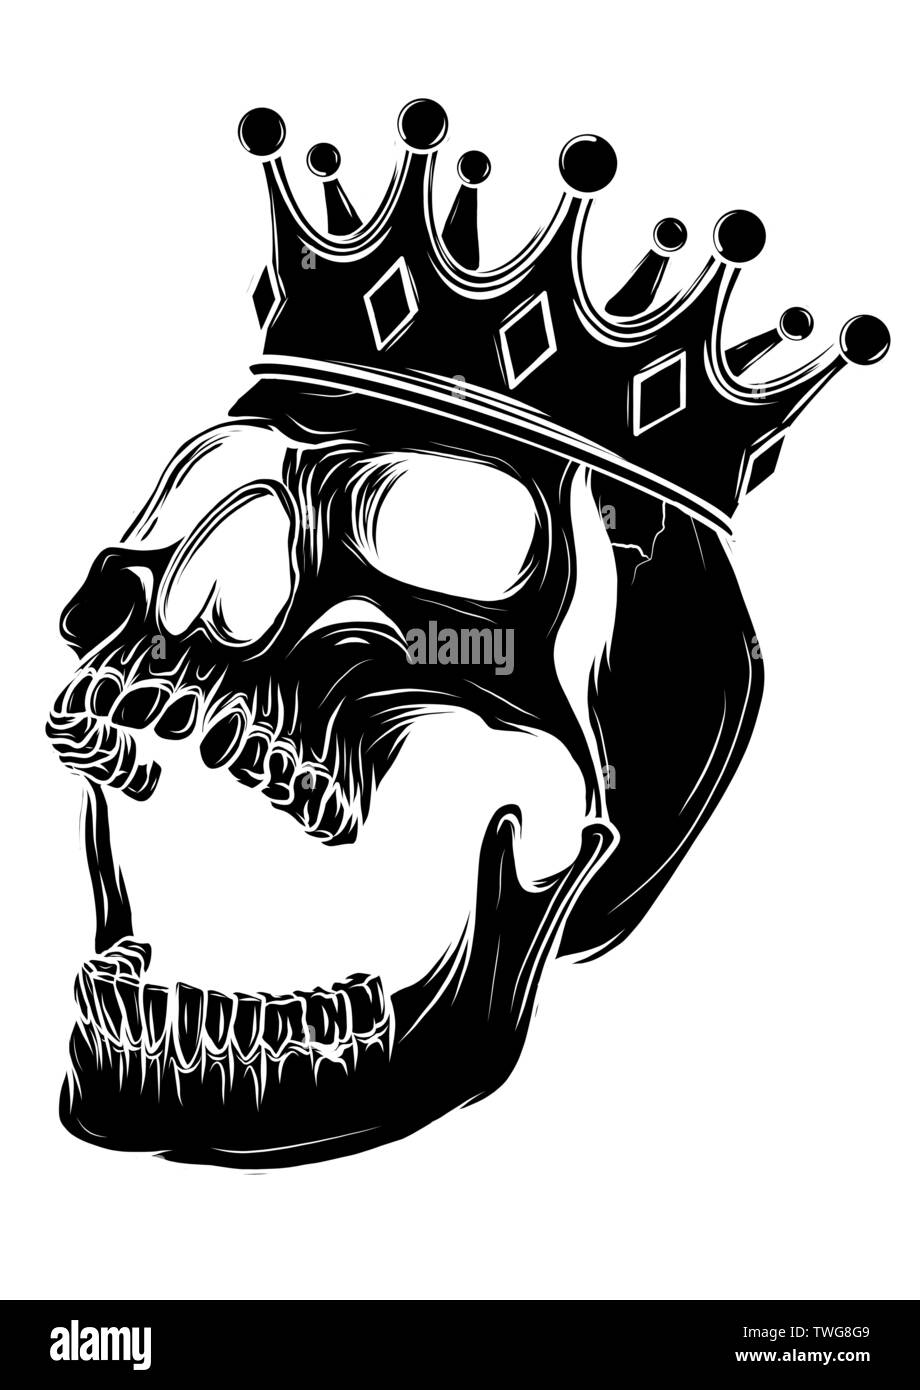 Hand Drawn King Skull Wearing Crown Vector Illustration Stock Vector Image Art Alamy Are you searching for cartoon skull png images or vector? https www alamy com hand drawn king skull wearing crown vector illustration image256669513 html